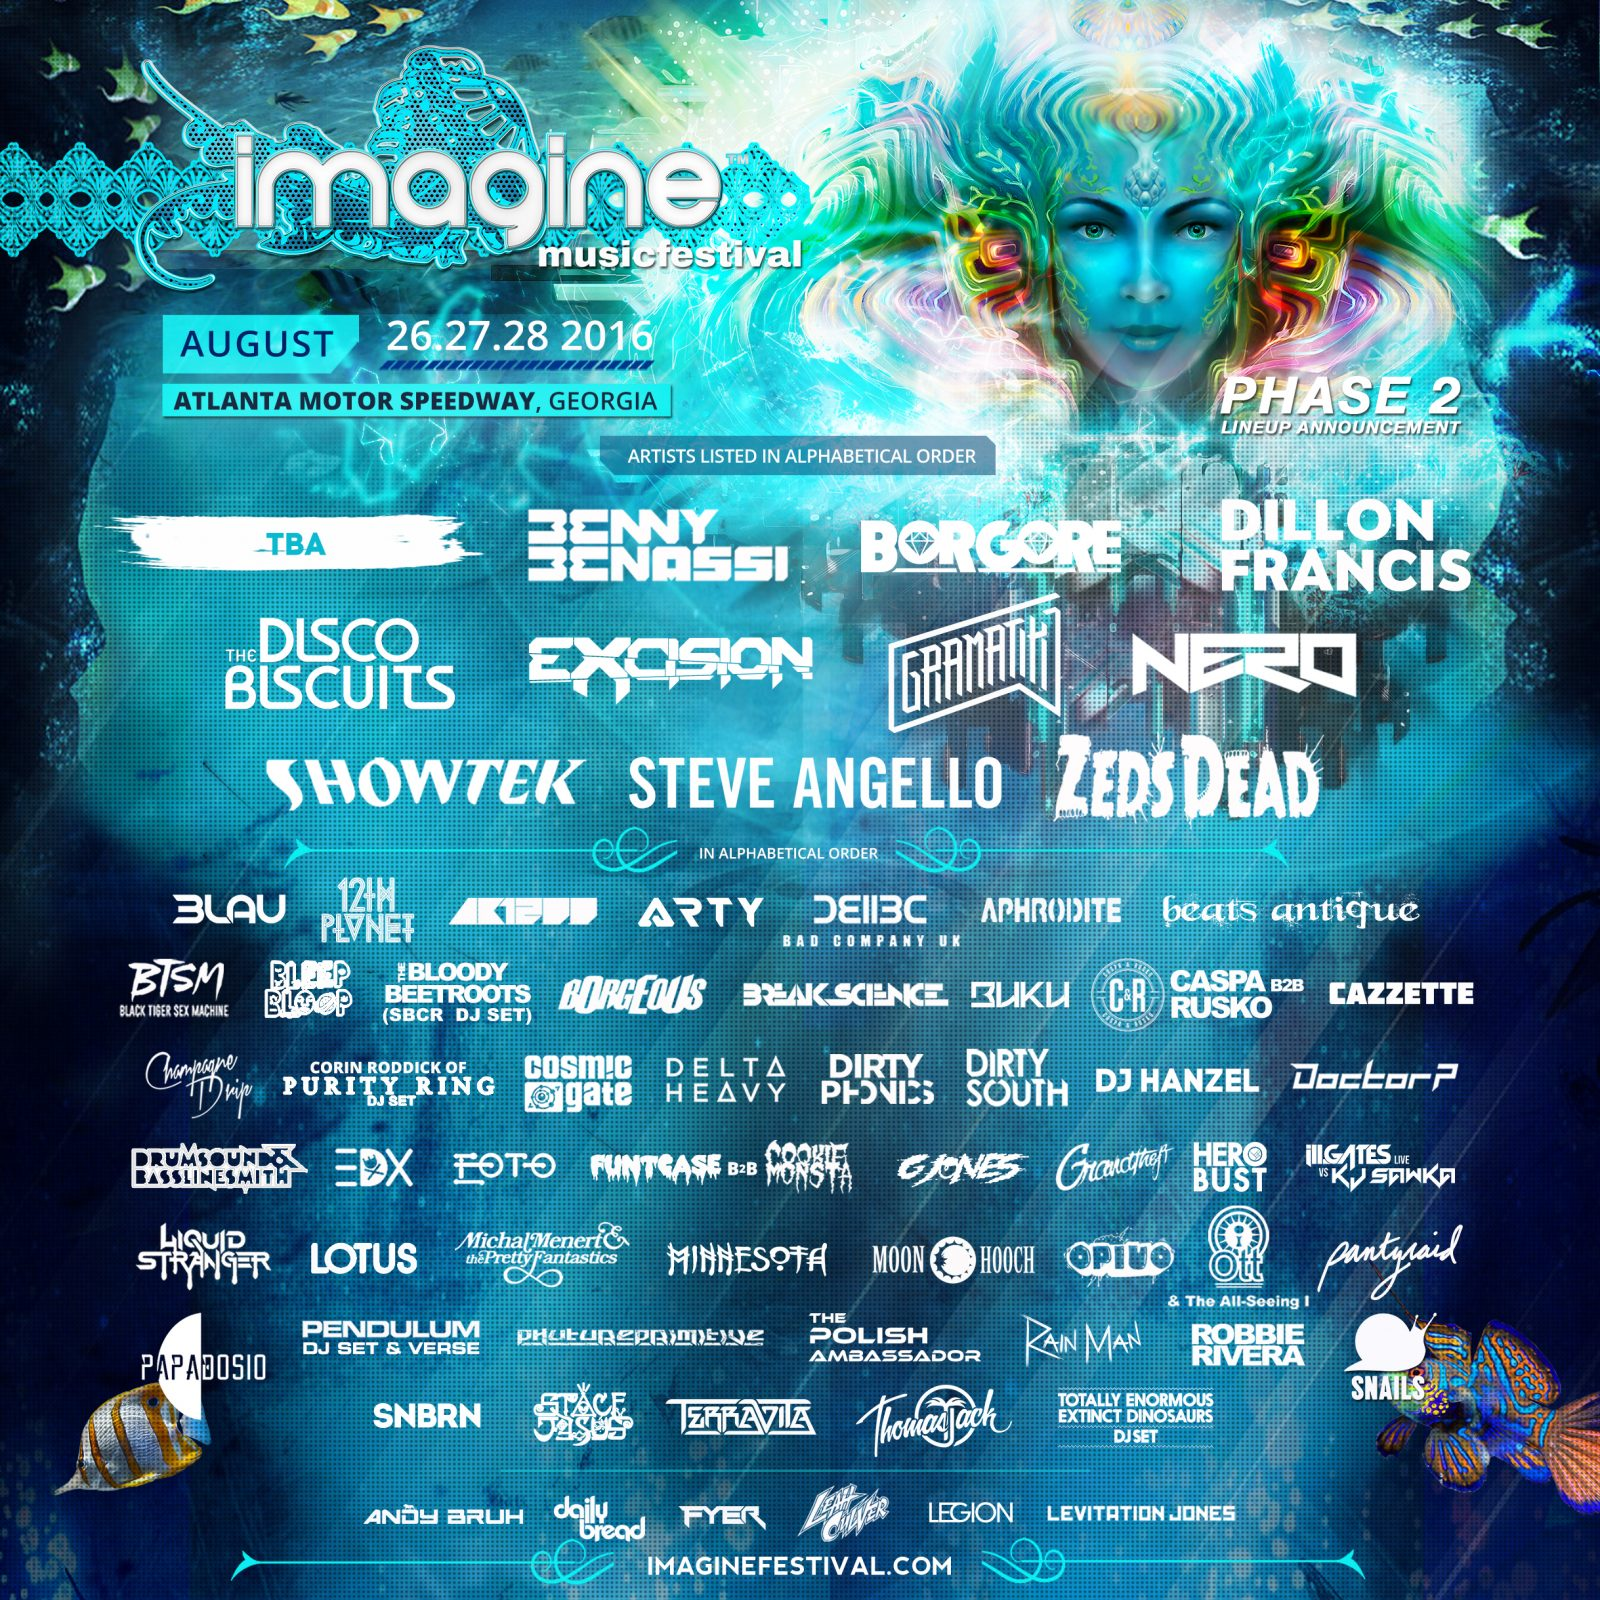 Imagine Music Festival's Phase 2 Lineup Includes DJ Hanzel's Live Debut